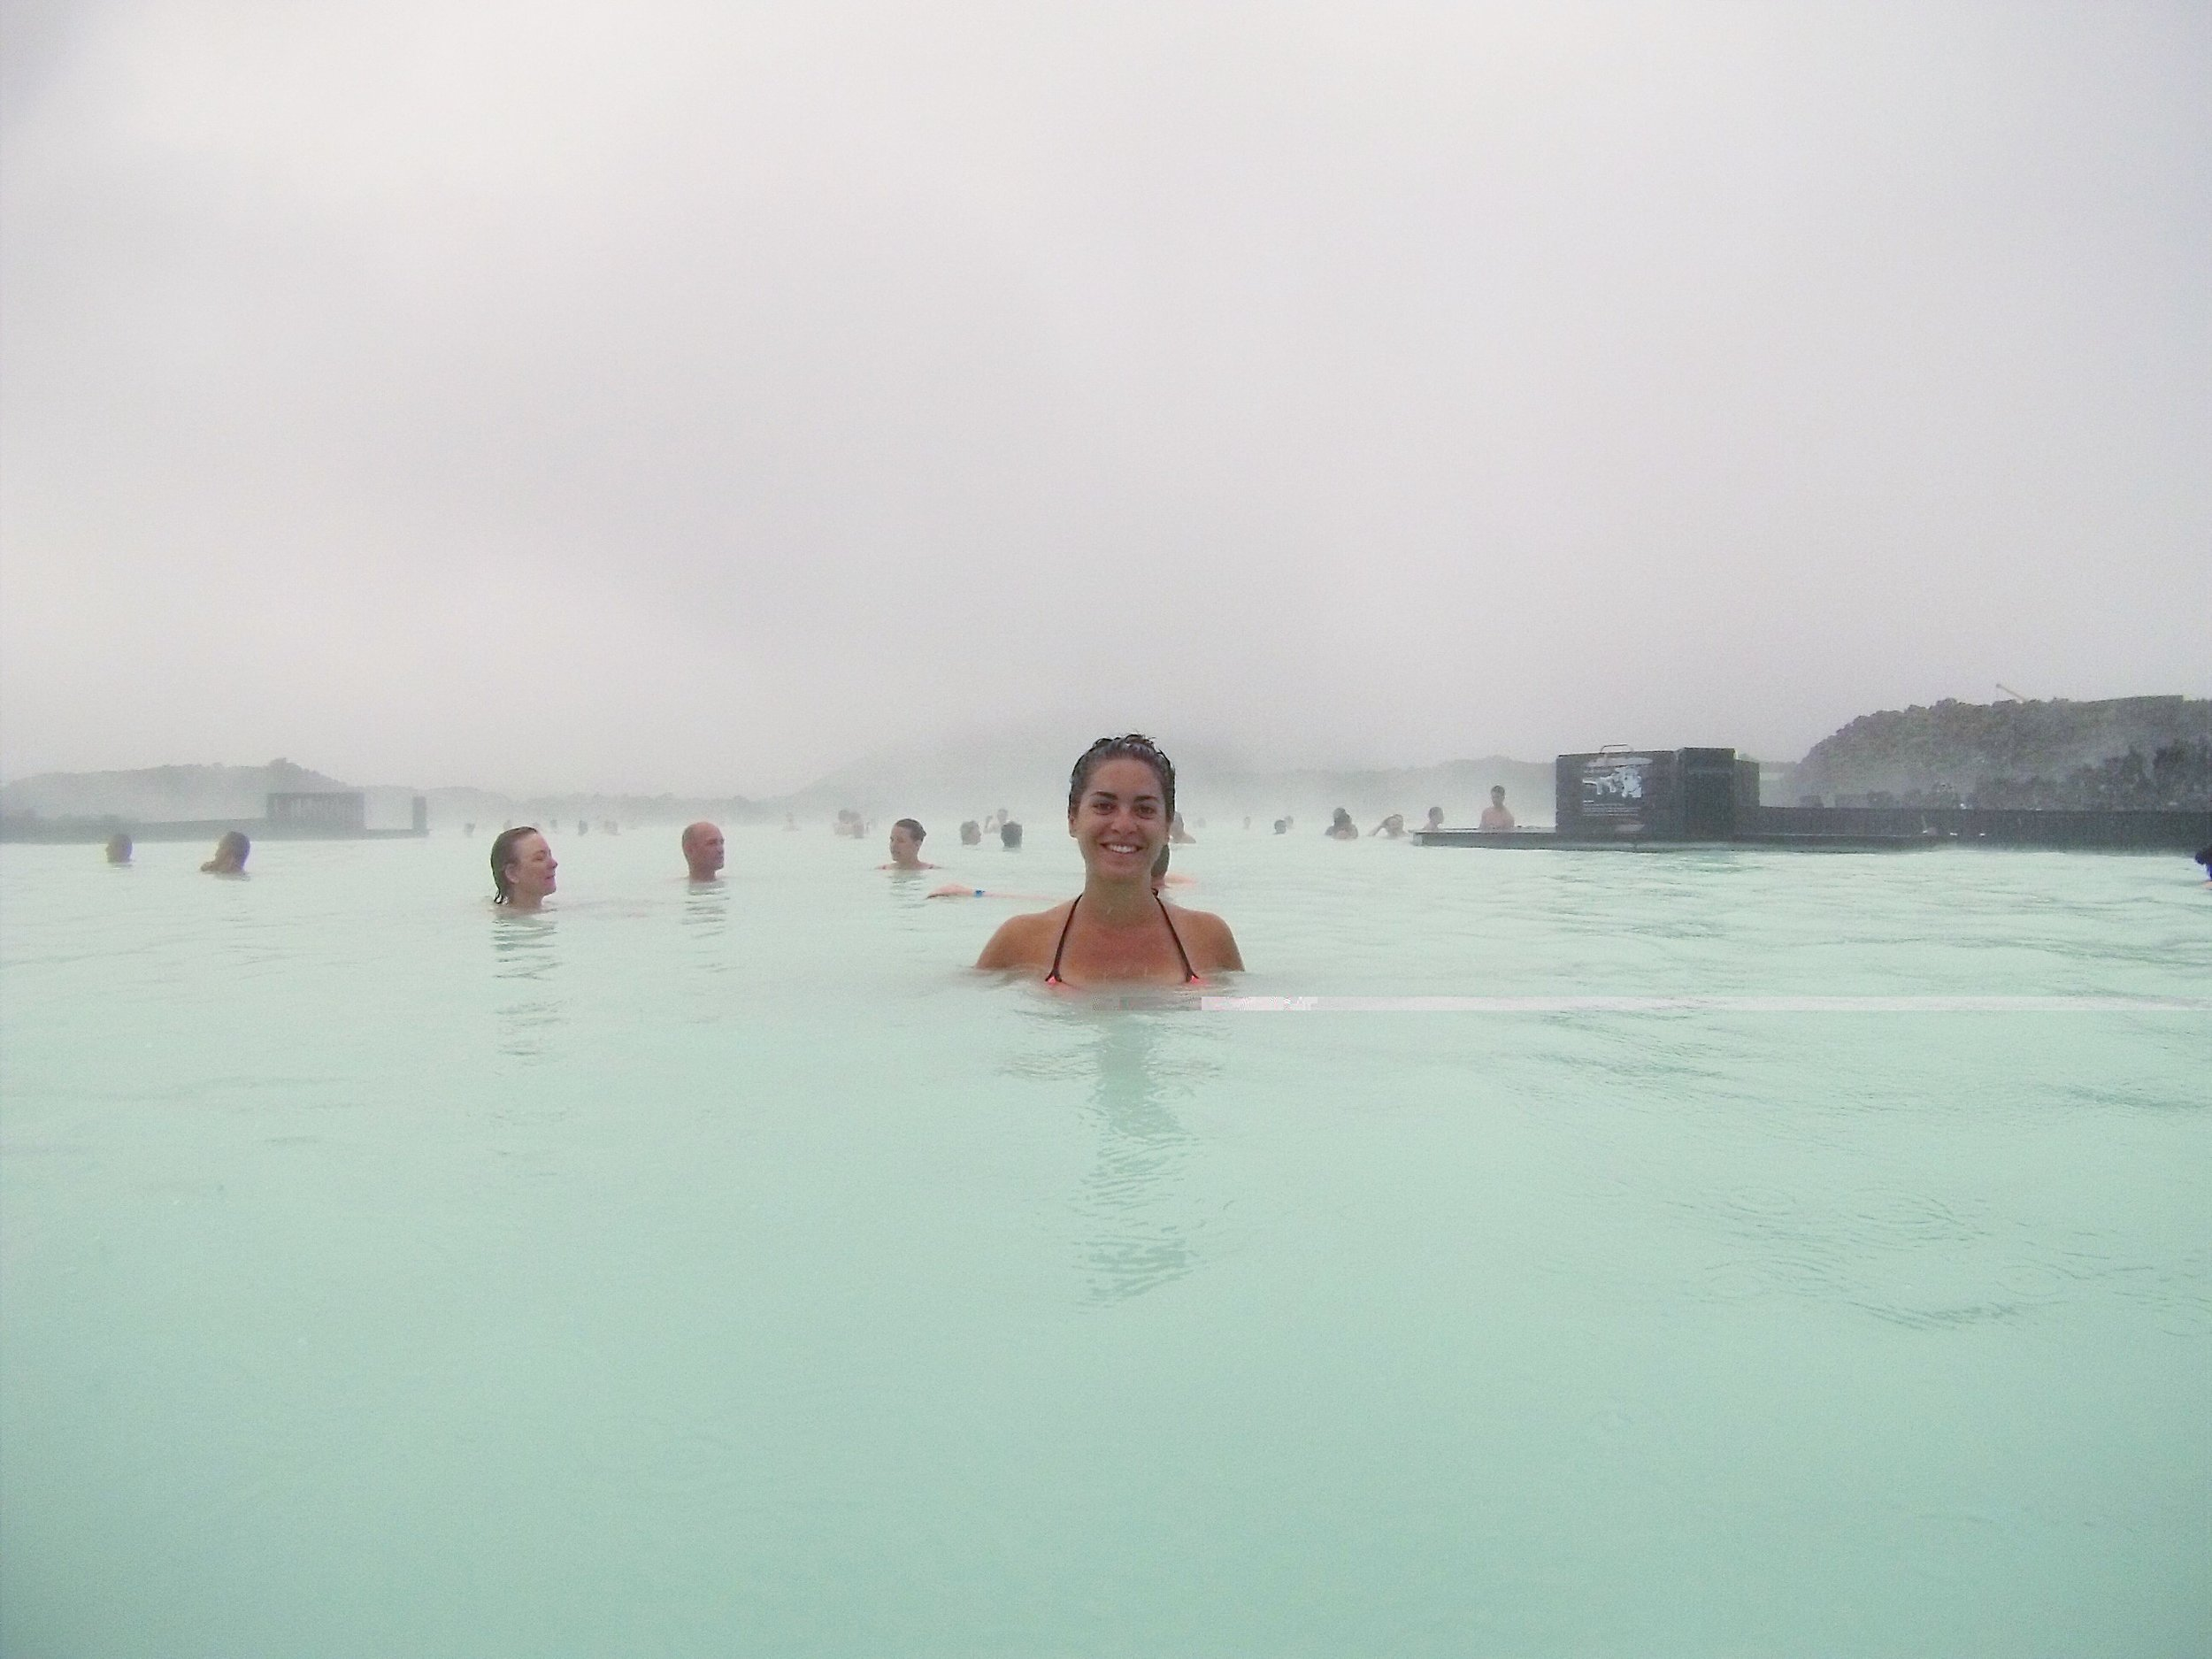 Getting my soak on at the Blue Lagoon.